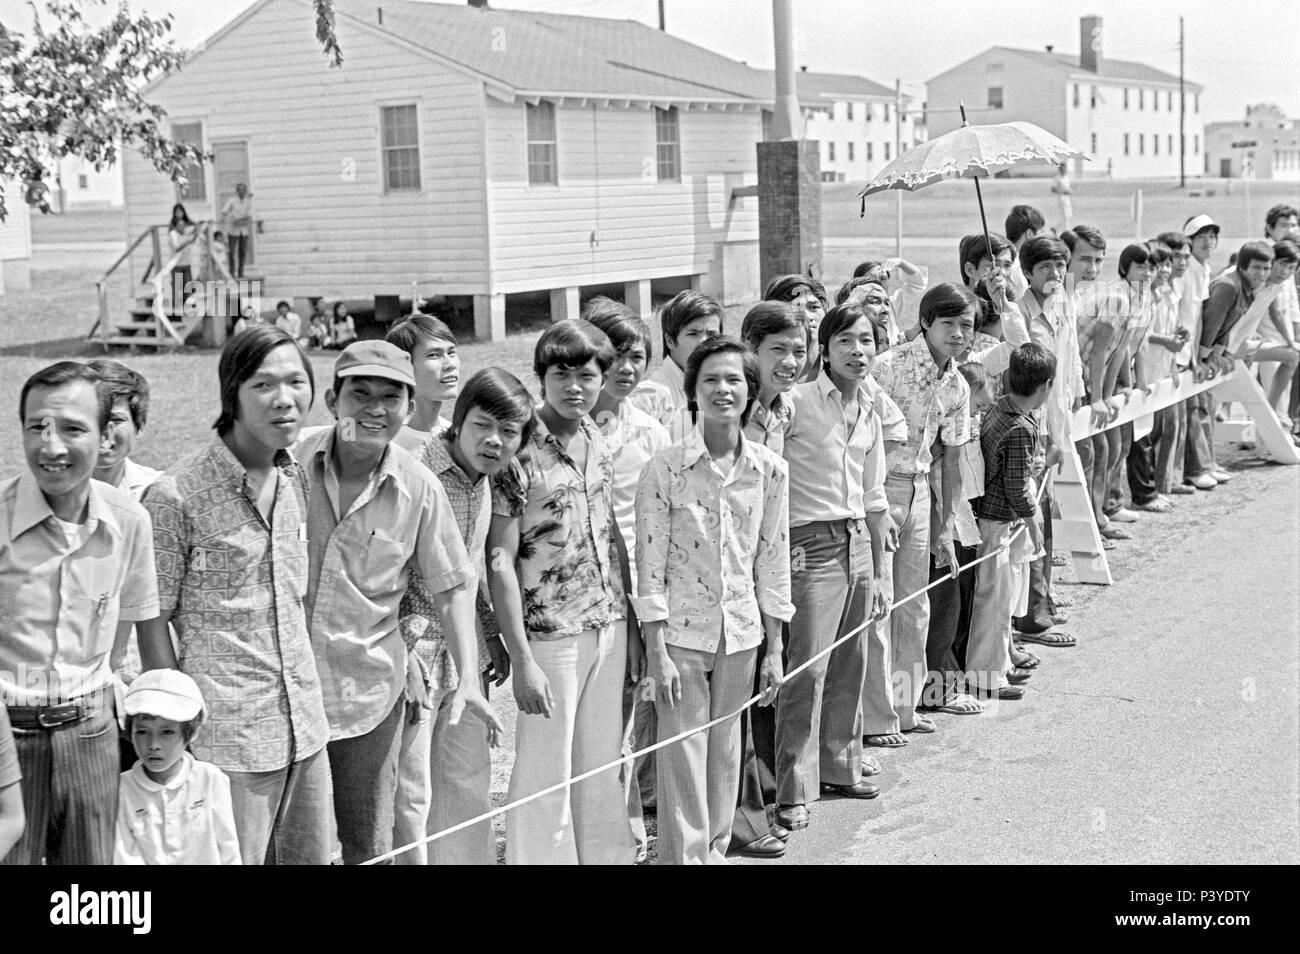 FORT SMITH, AR, USA - AUGUST 10, 1975 -- A line of newly-arrived Vietnamese refugees stand and wait for the passing of President Gerald Ford.  The president is to be touring the Fort Chaffee Vietnamese refugee center and welcoming the evacuated South Vietnamese to the United States.  Behind the people stands rows of the barracks buildings that housed the refugees. - Stock Image